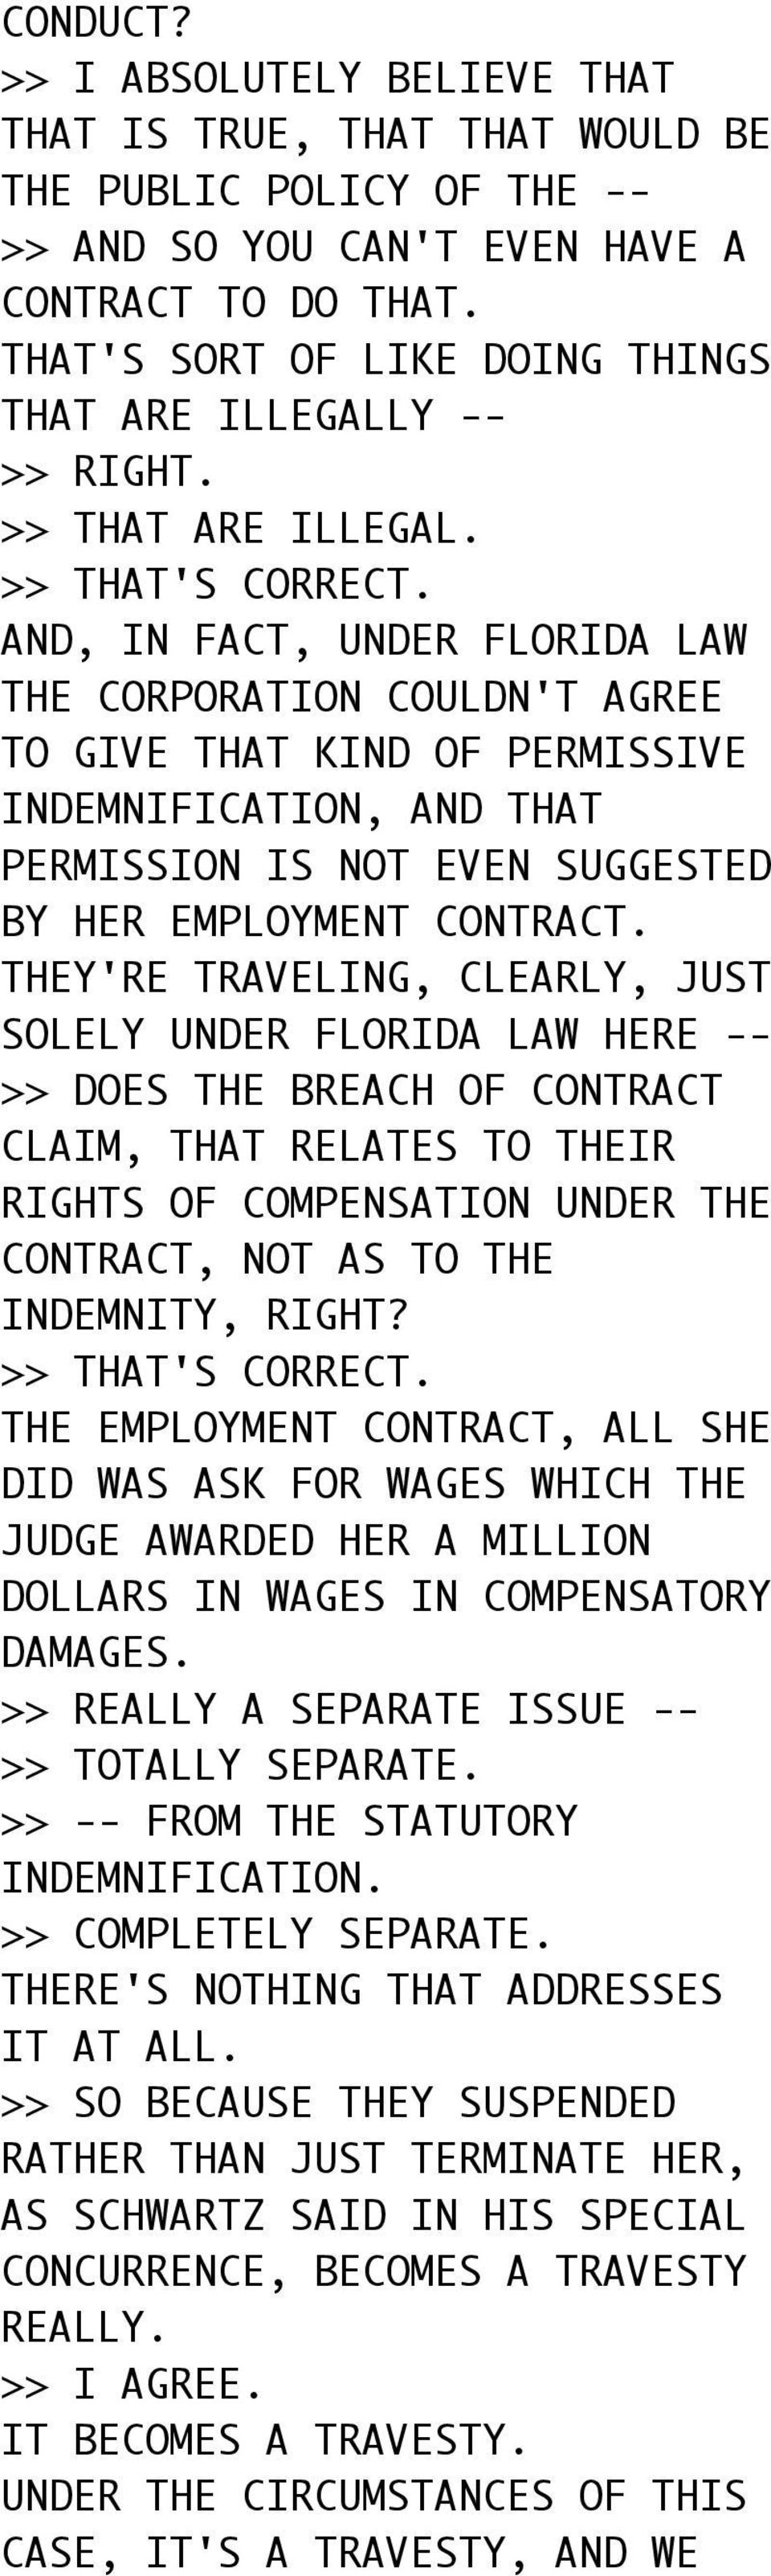 AND, IN FACT, UNDER FLORIDA LAW THE CORPORATION COULDN'T AGREE TO GIVE THAT KIND OF PERMISSIVE INDEMNIFICATION, AND THAT PERMISSION IS NOT EVEN SUGGESTED BY HER EMPLOYMENT CONTRACT.